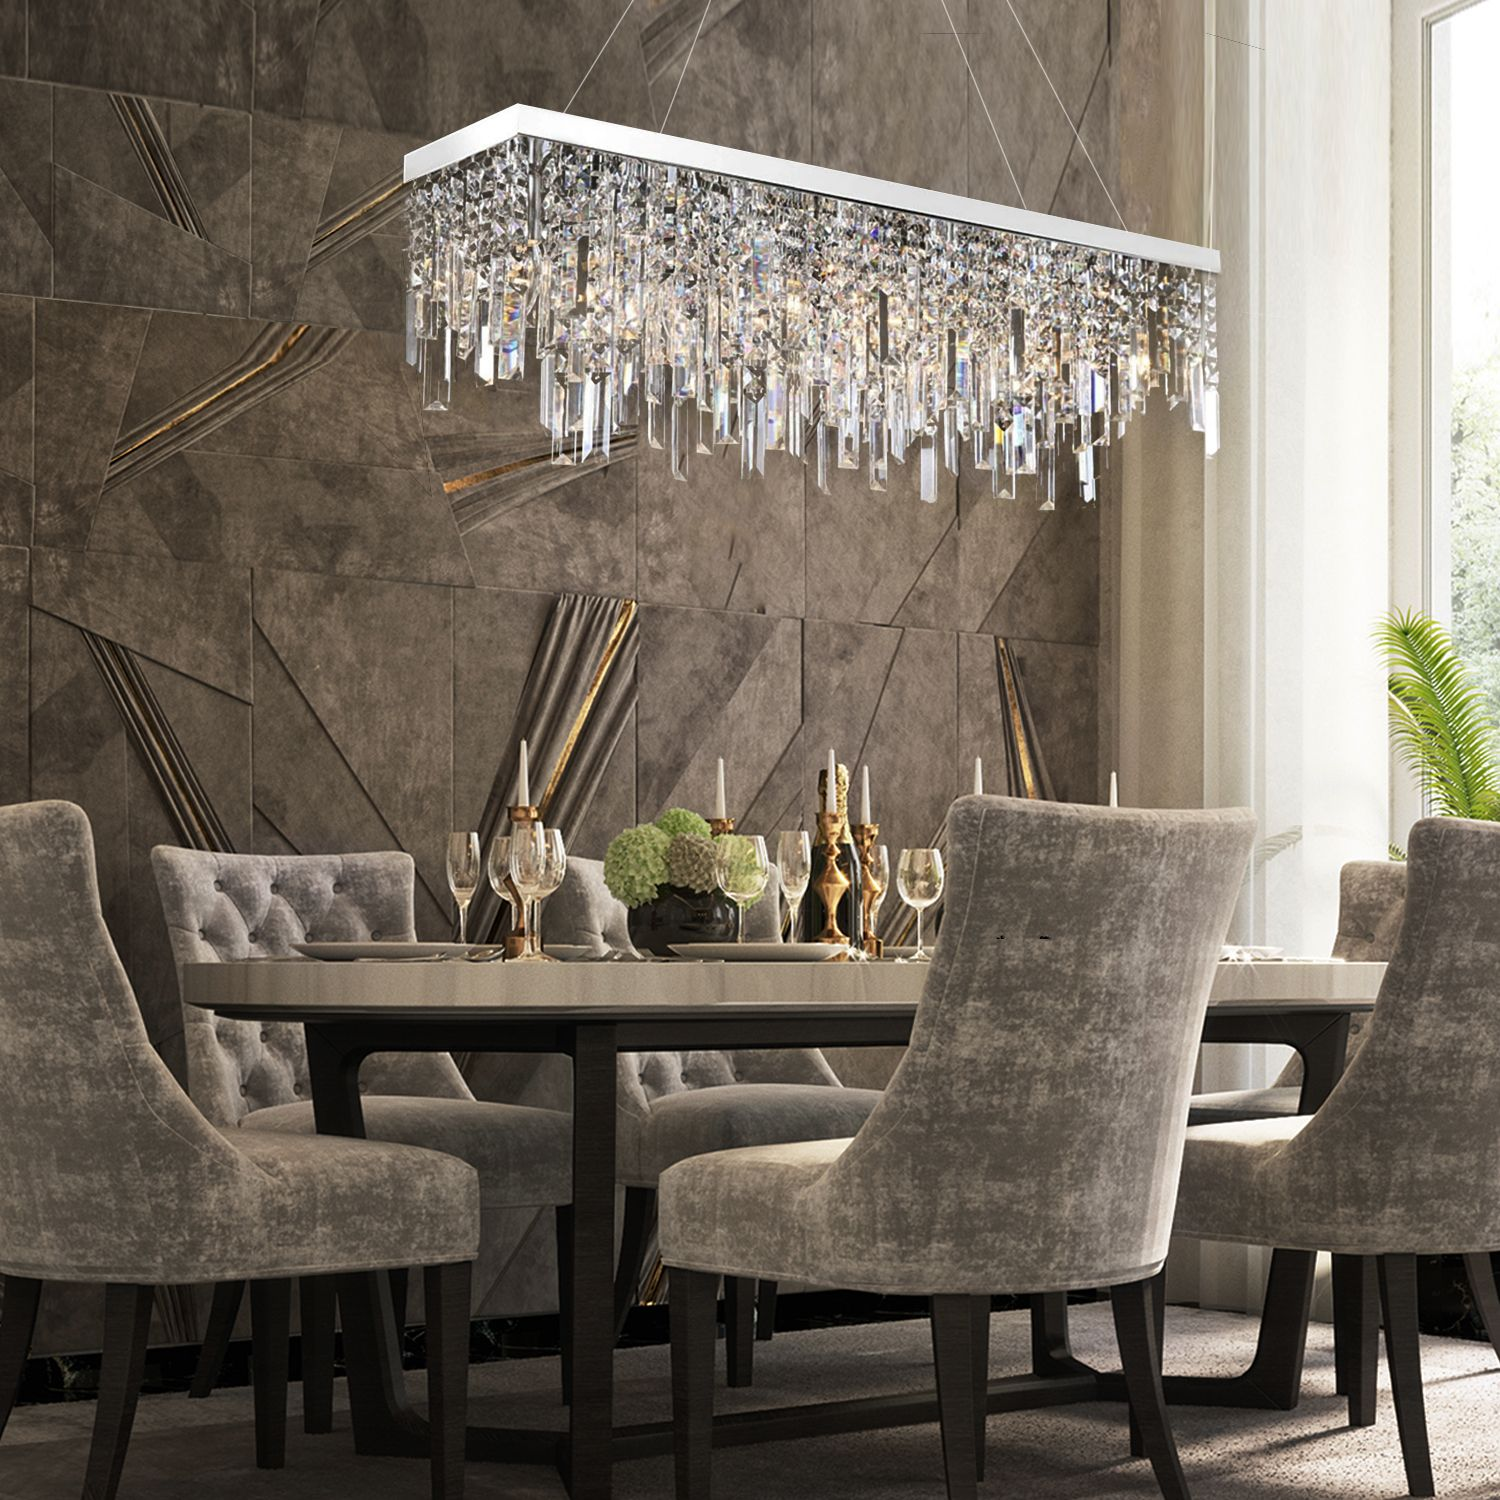 Rectangular Crystal Chandelier With Linear Design Dining Room In 2020 Crystal Chandelier Dining Room Dining Room Pendant Beautiful Dining Rooms